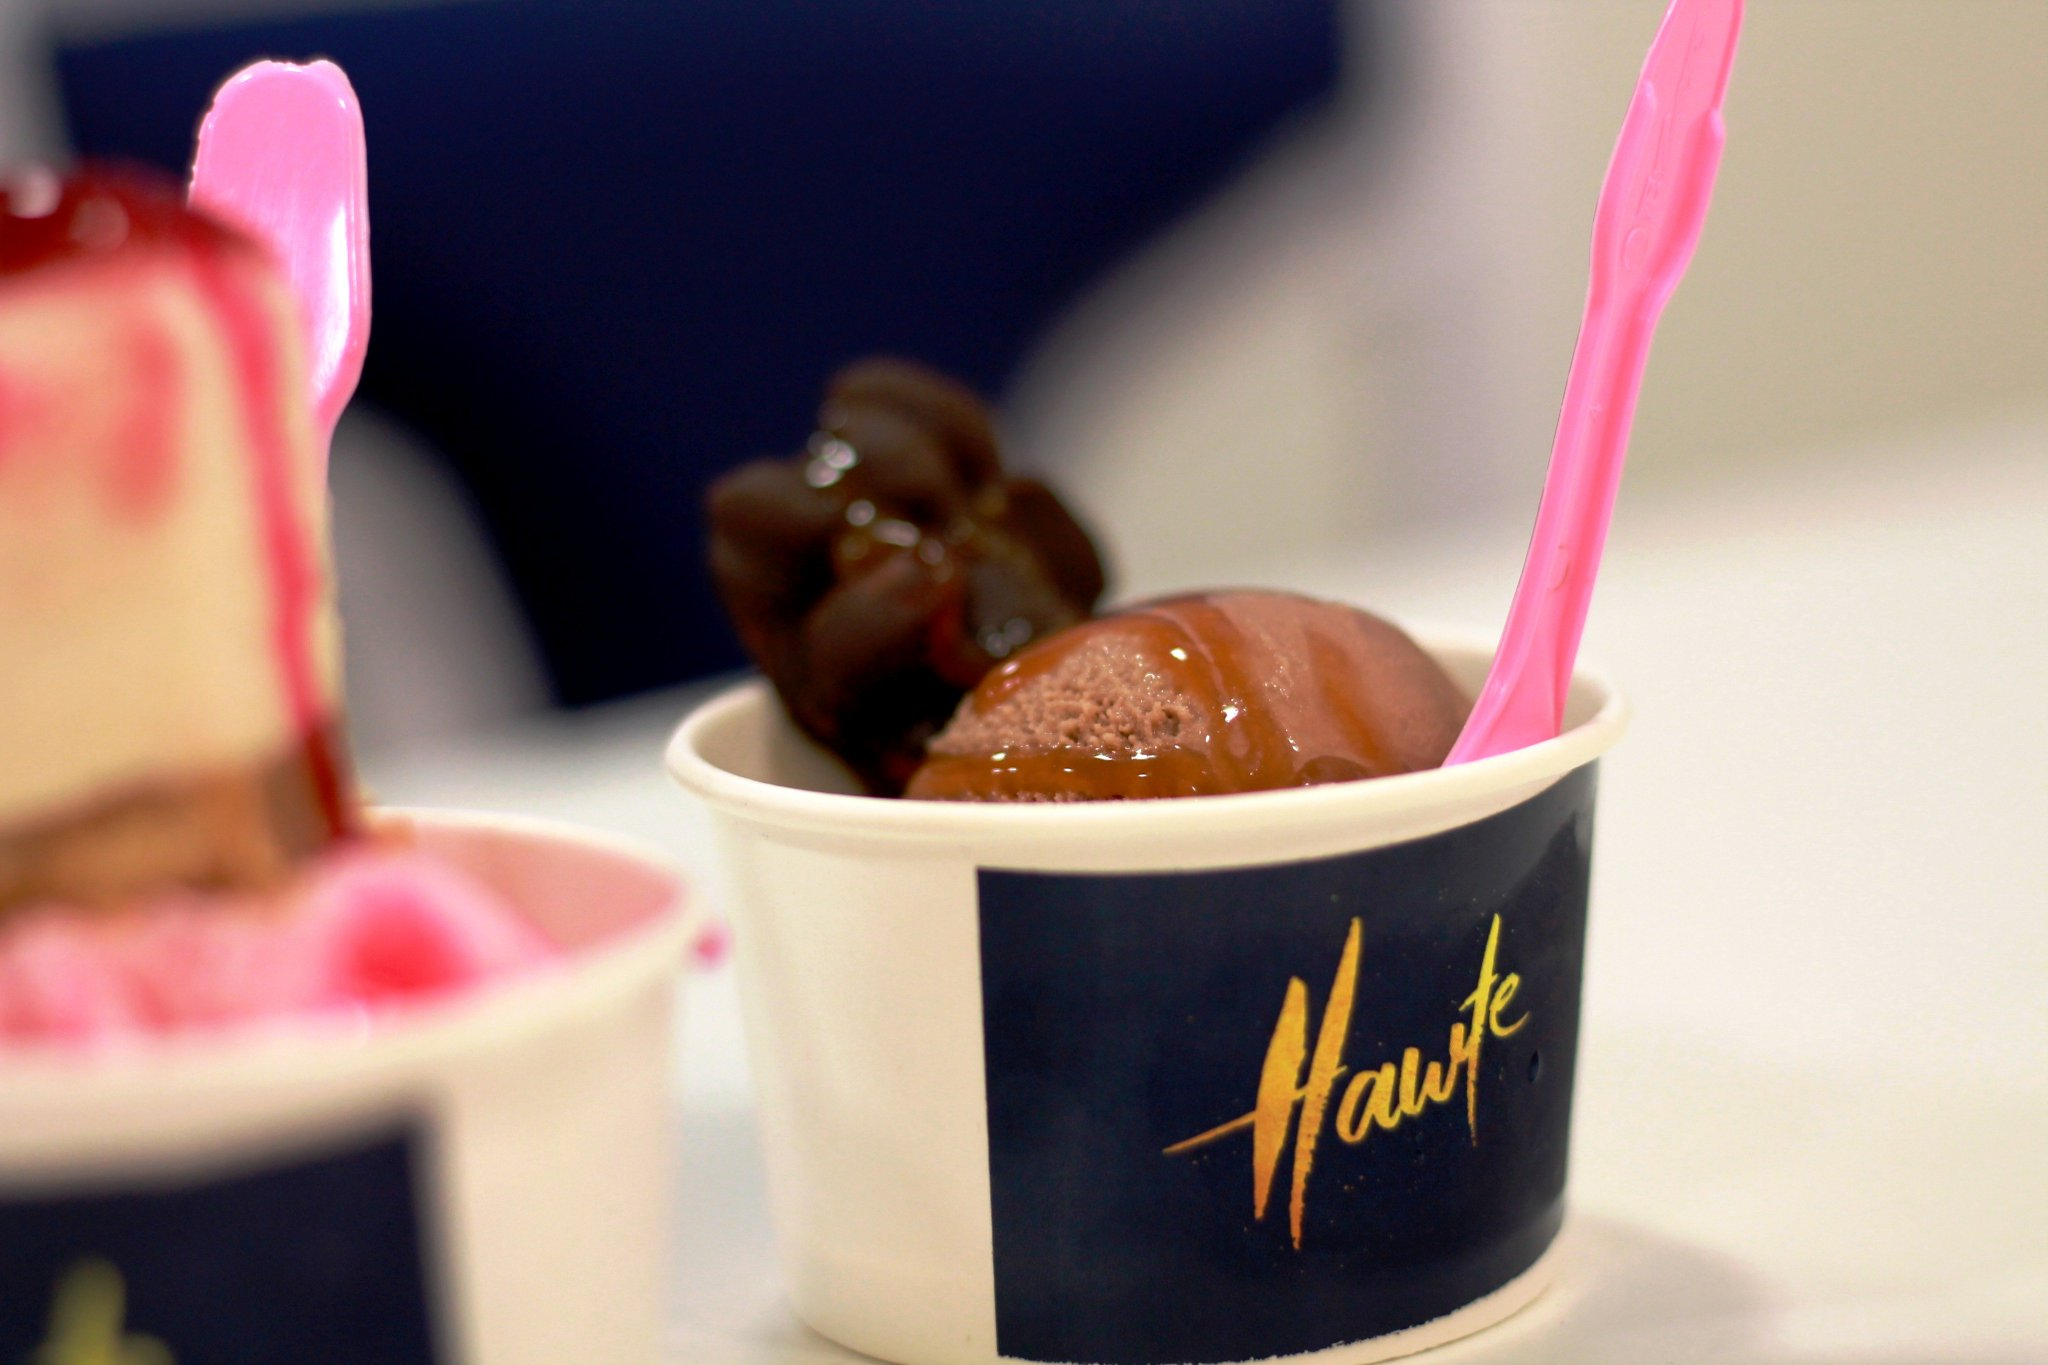 Alcohol-infused ice cream creator Hawte is a cool franchise to own